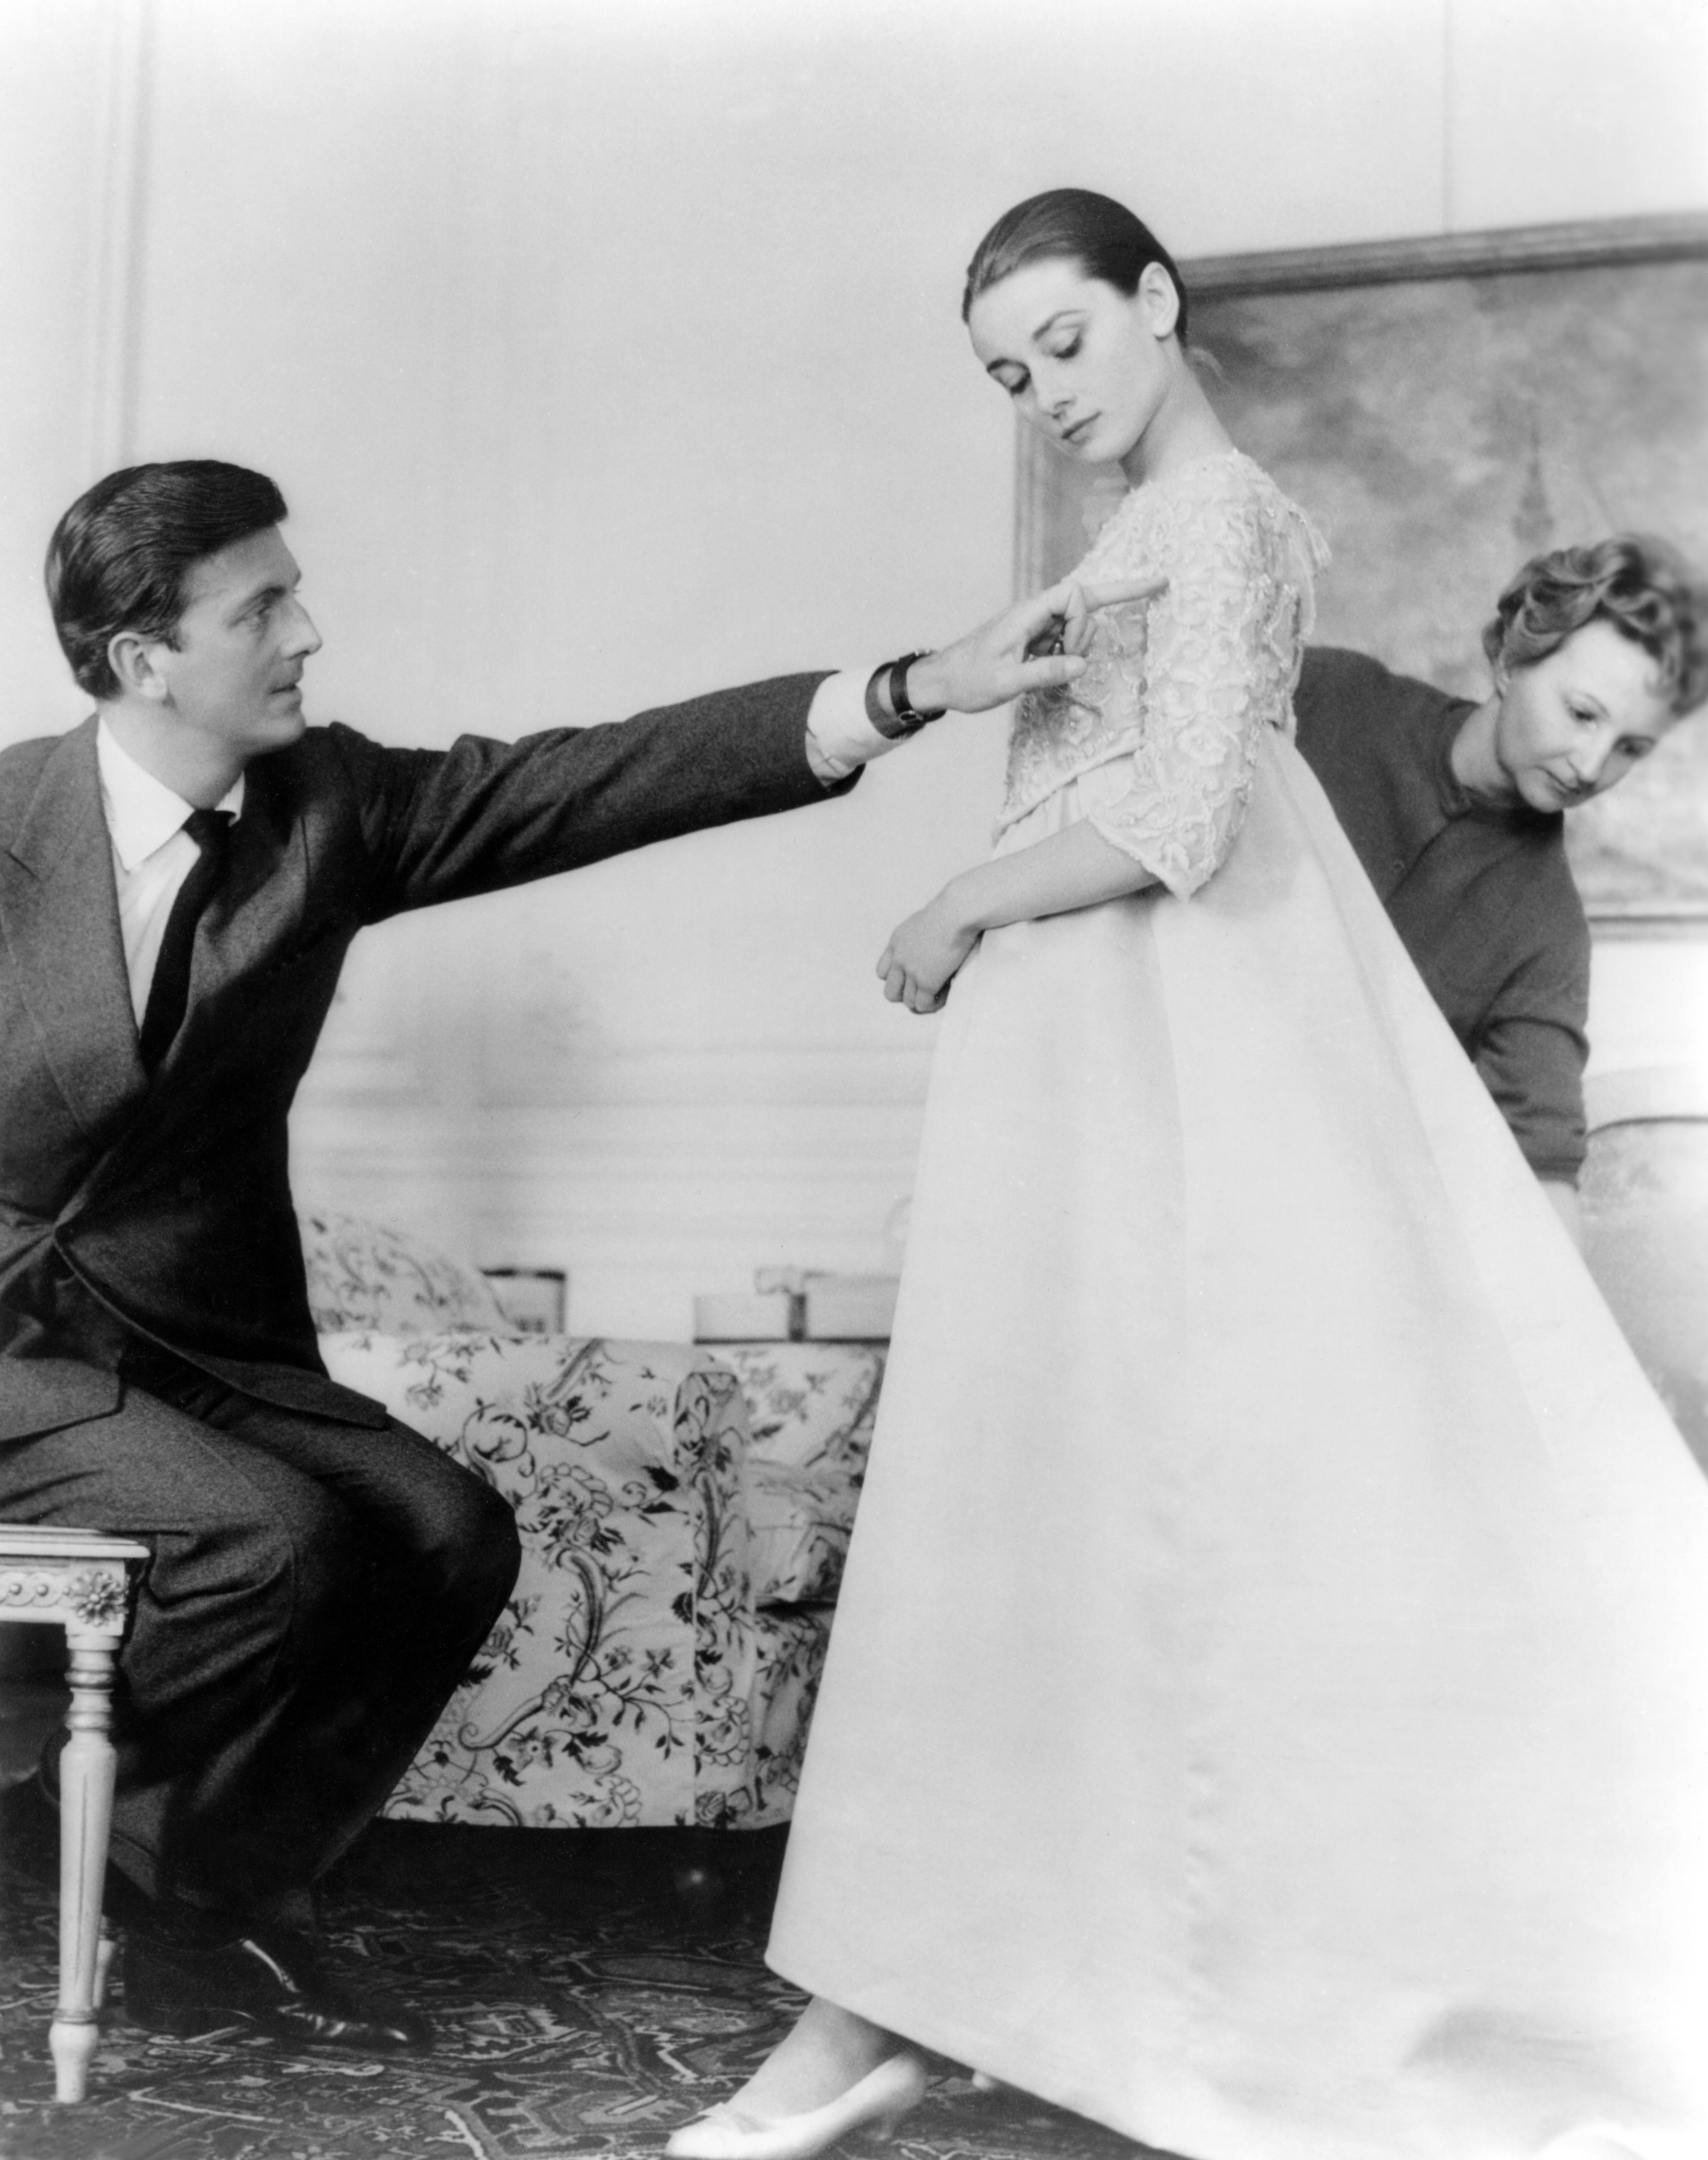 Audrey Hepburn with couturier Hubert de Givenchy in his workshop, in Paris   Source: Getty Images